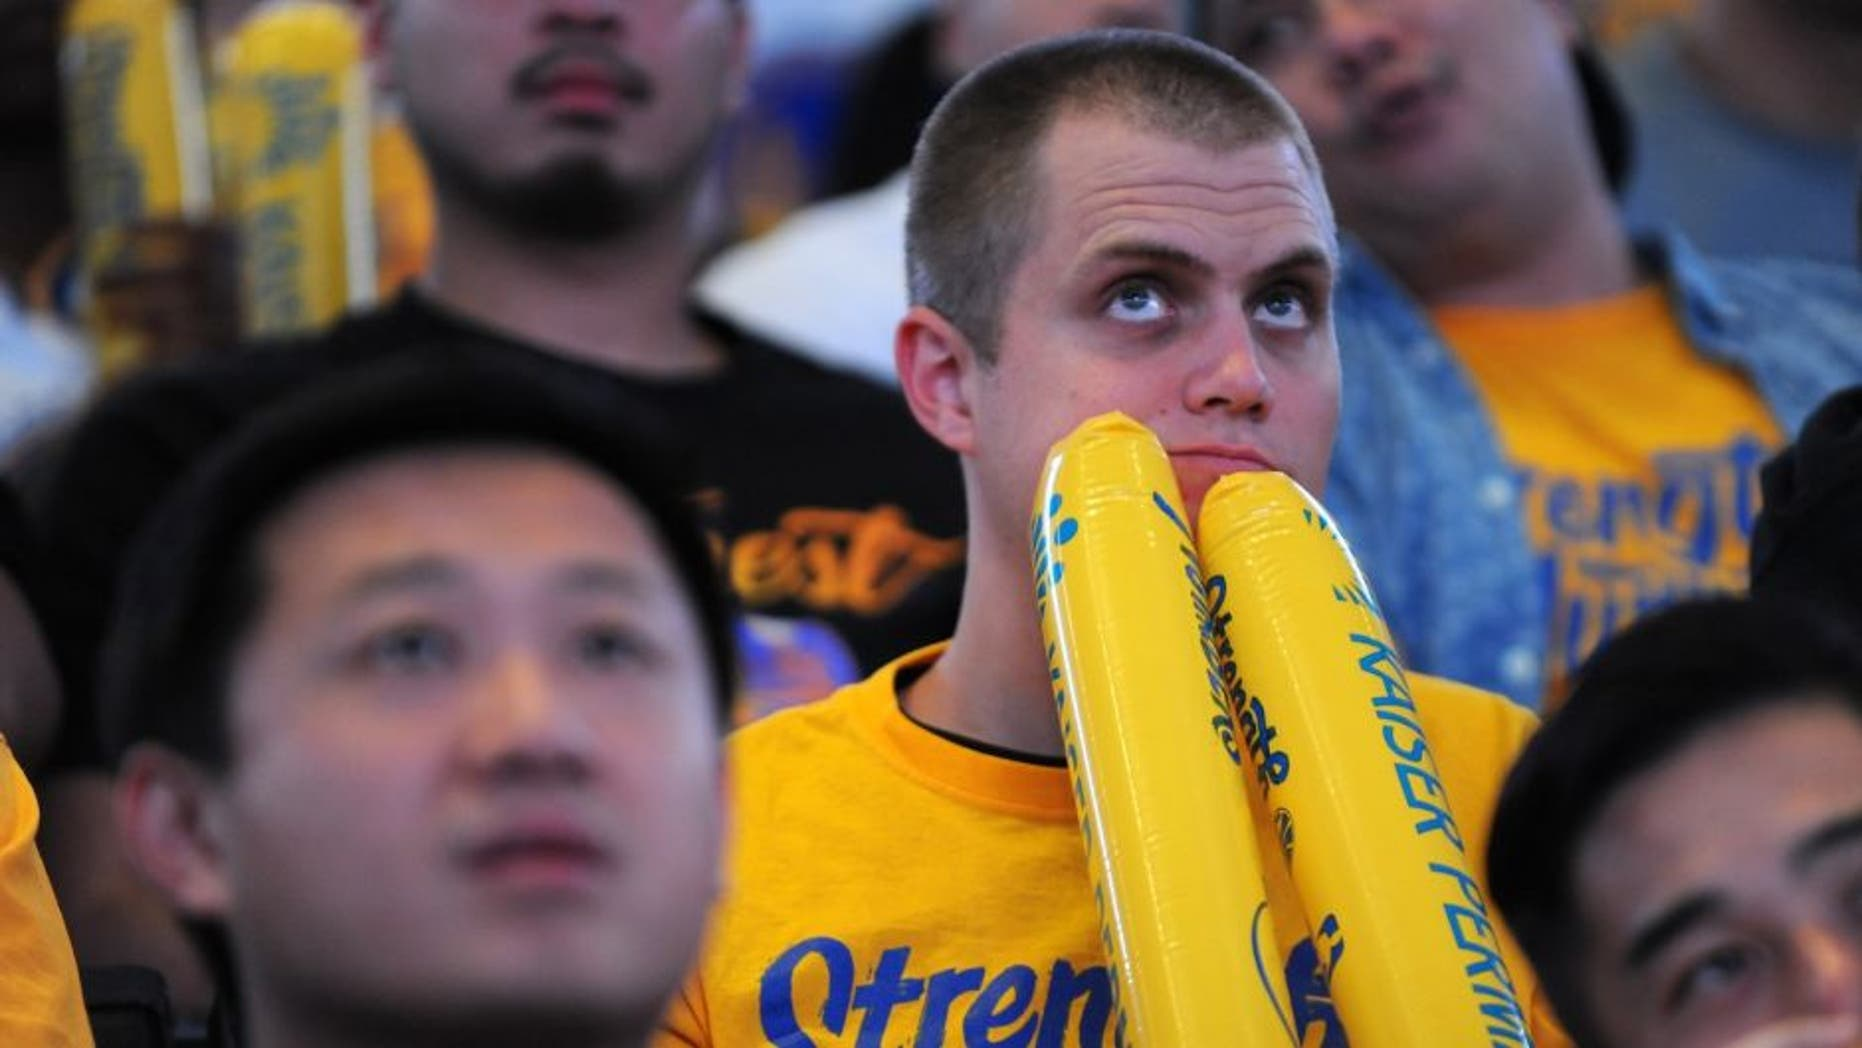 OAKLAND, CA - JUNE 16: A fan reacts in the final moments of Game Six during the Golden State Warriors NBA Finals watch party at ORACLE Arena on June 16, 2016 in Oakland, California. (Photo by Robert Reiners/Getty Images)